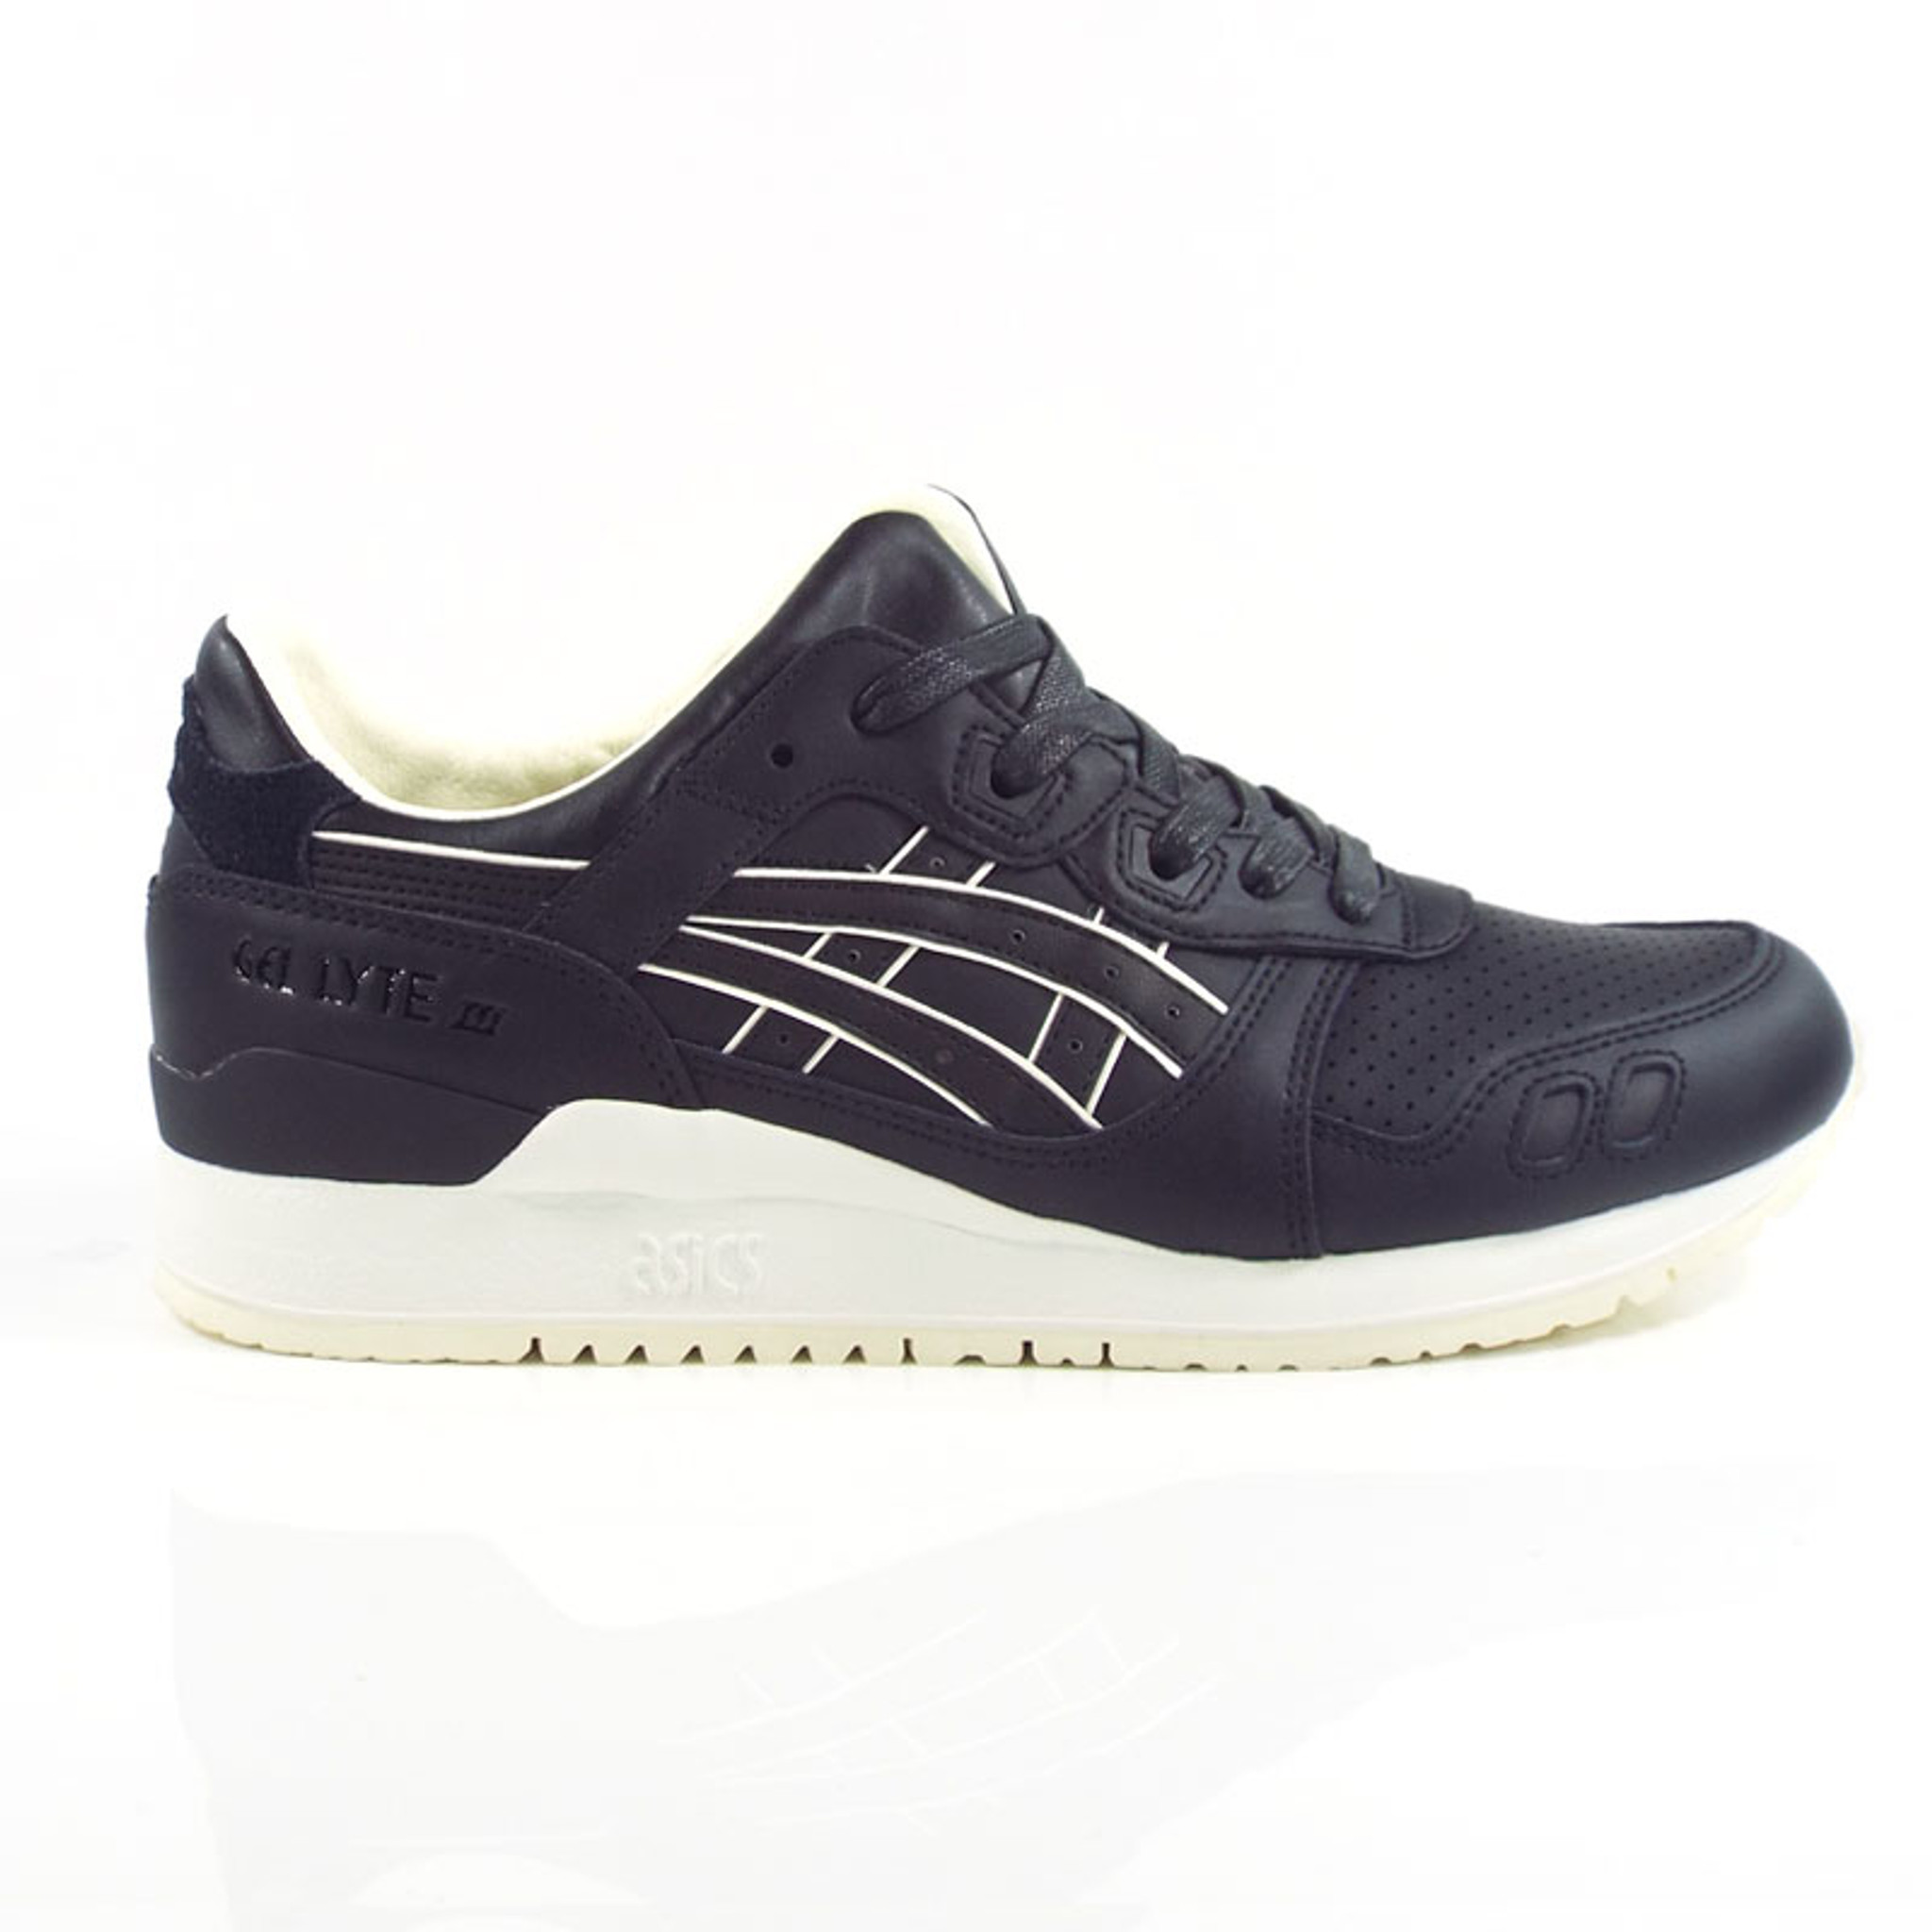 newest collection 37764 80dae Asics Gel Lyte III Shoes - Black/Black